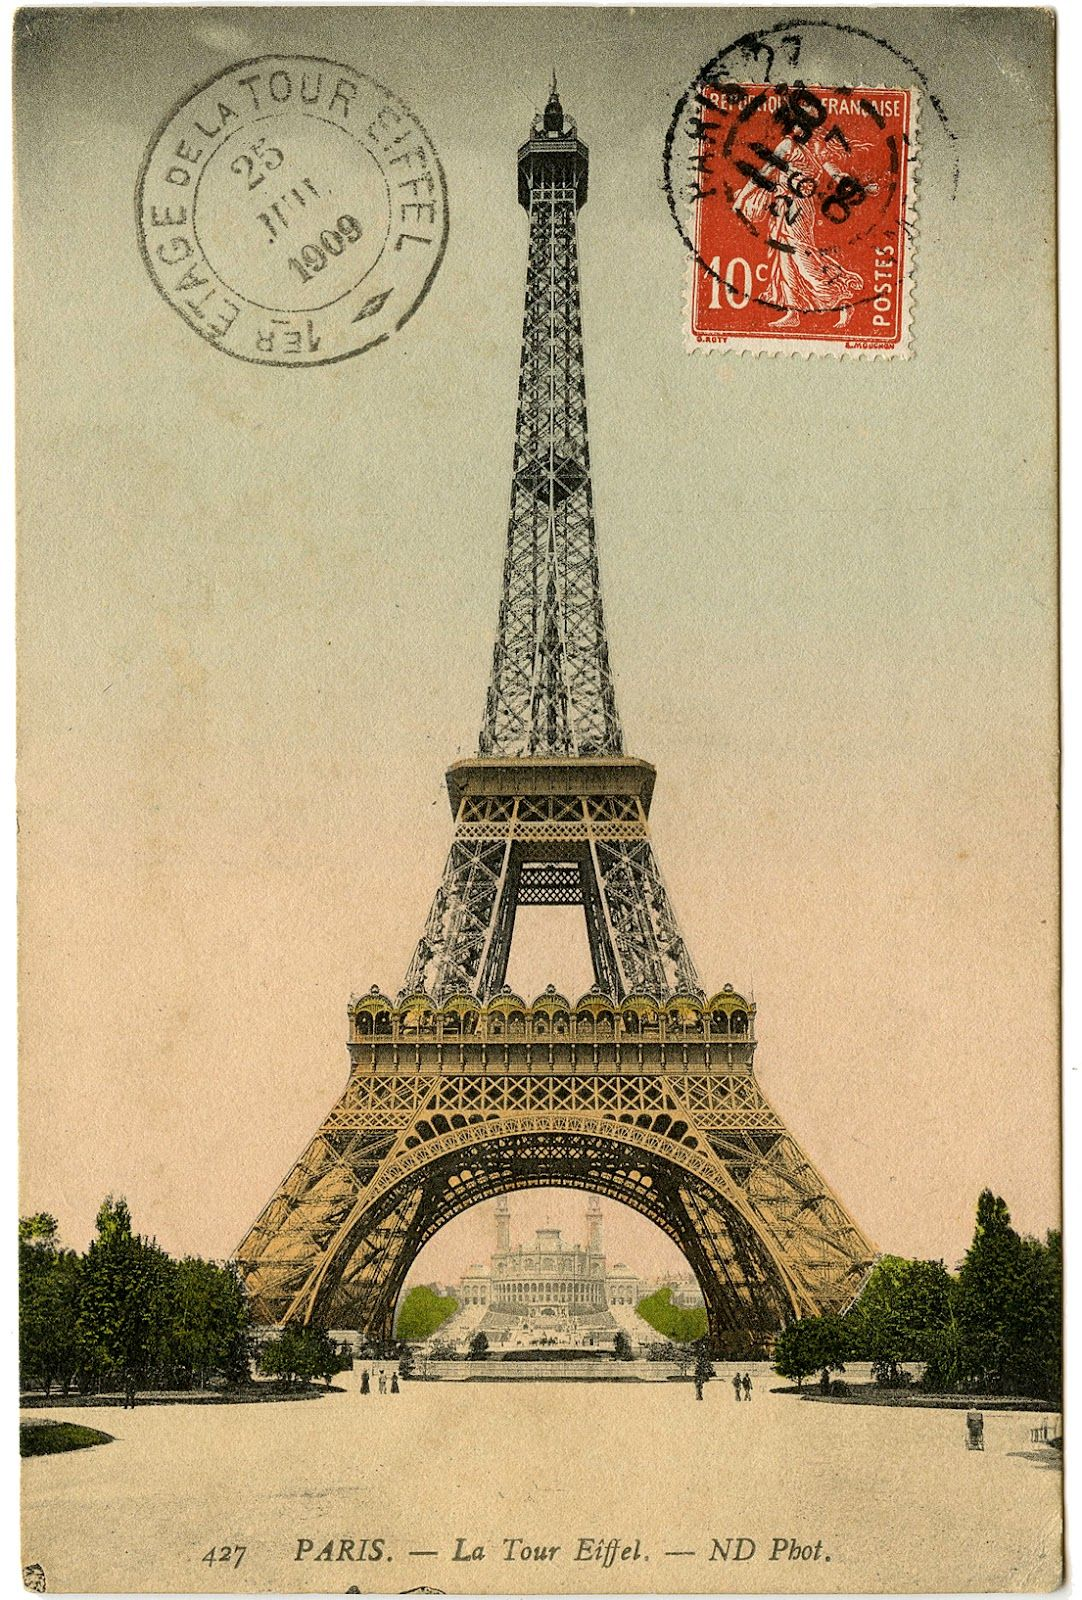 Vintage Image - Eiffel Tower Photo and Postmark | Sam\'s baby shower ...